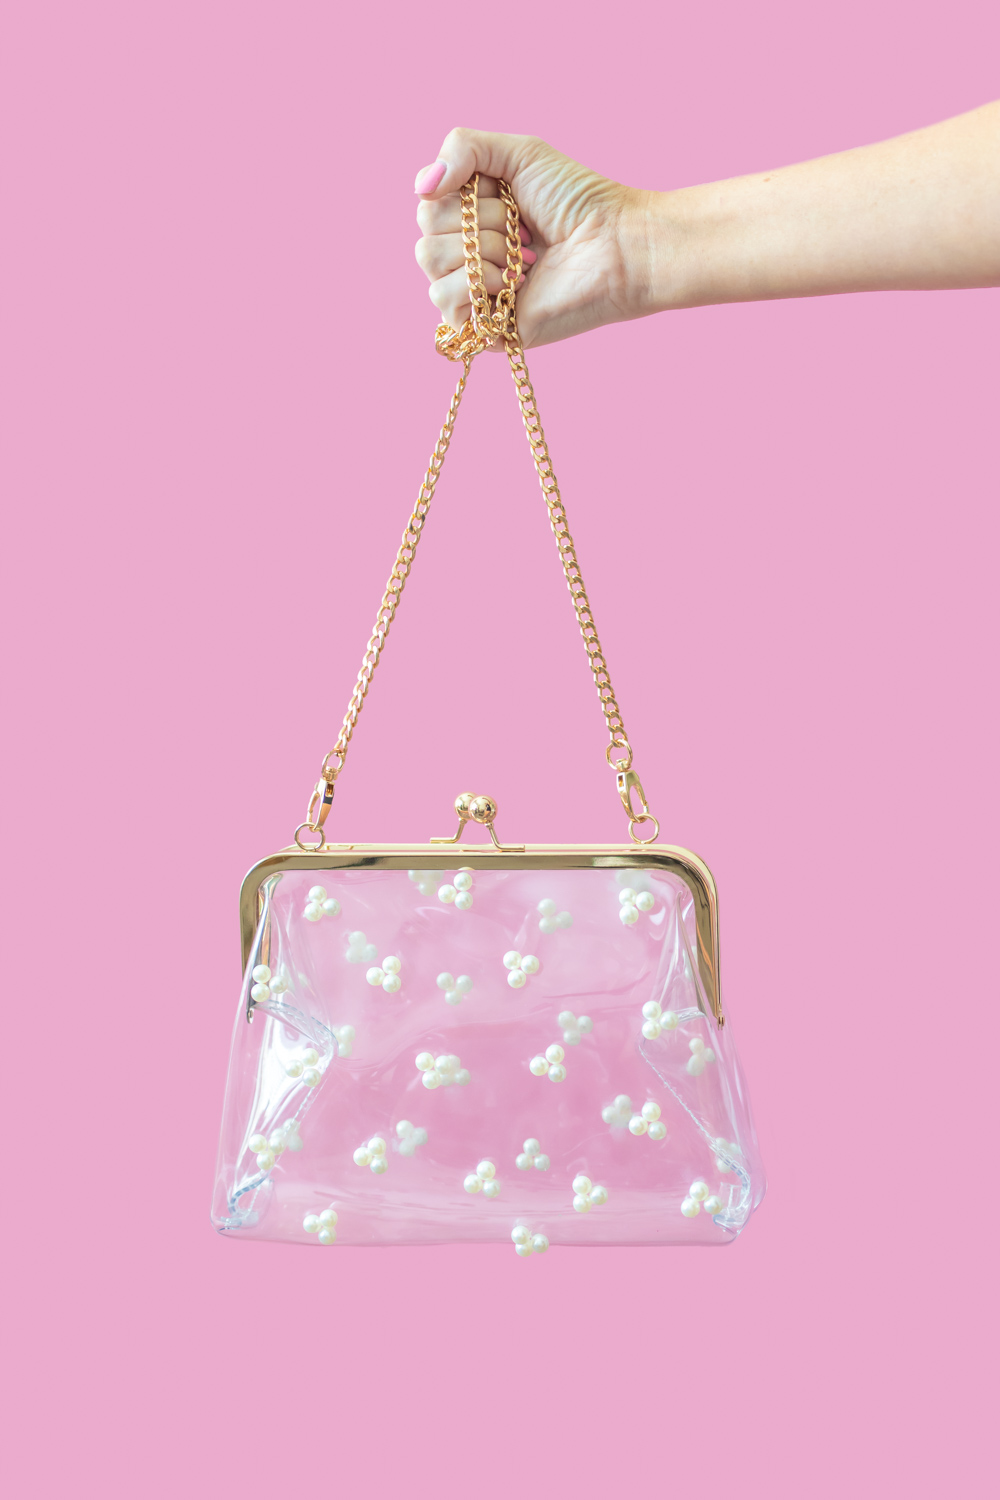 hand holding a clear pearl purse